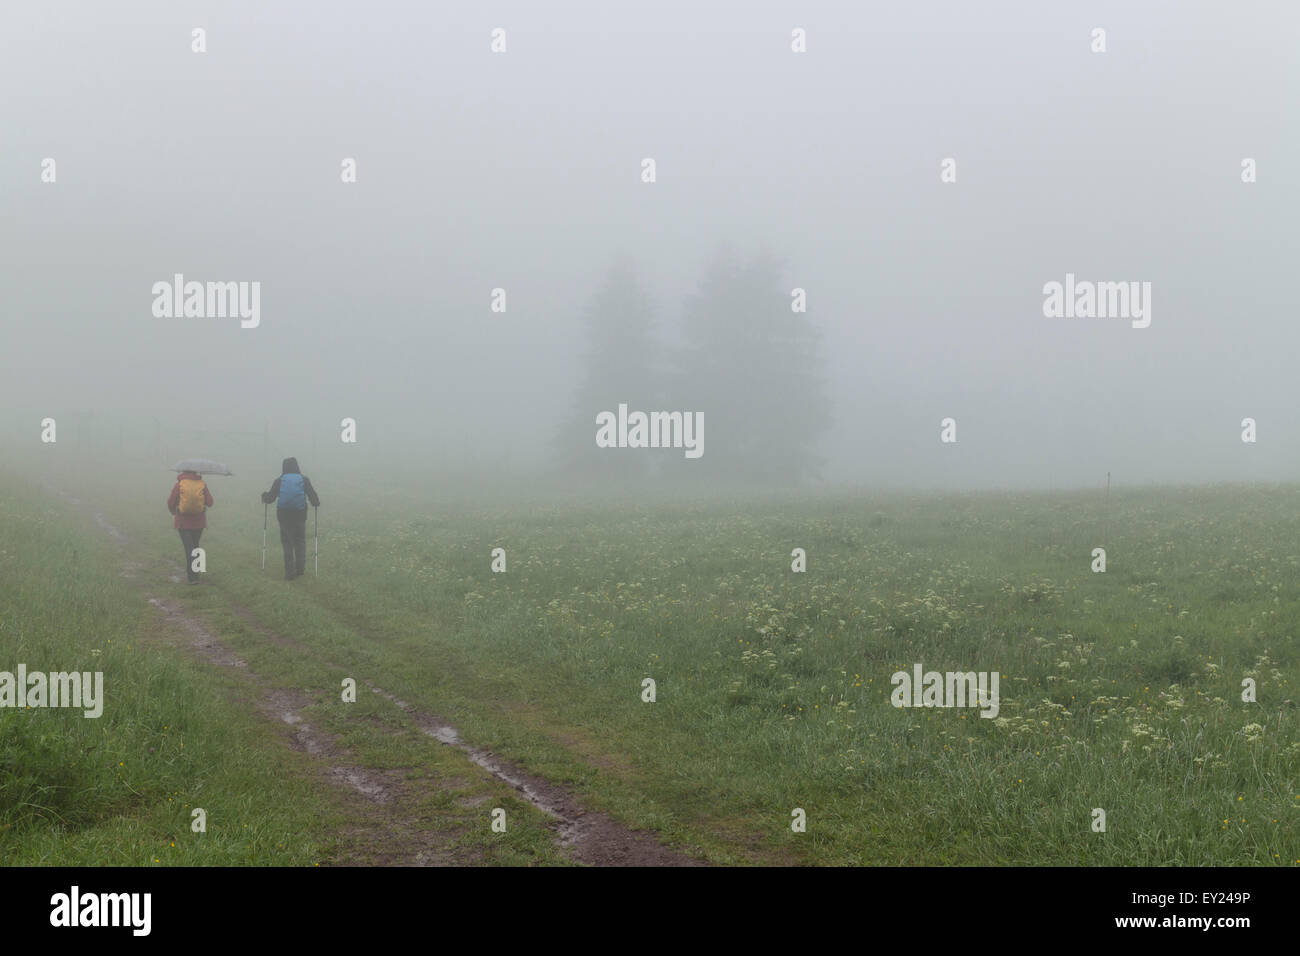 Hikers in foggy meadow - Stock Image